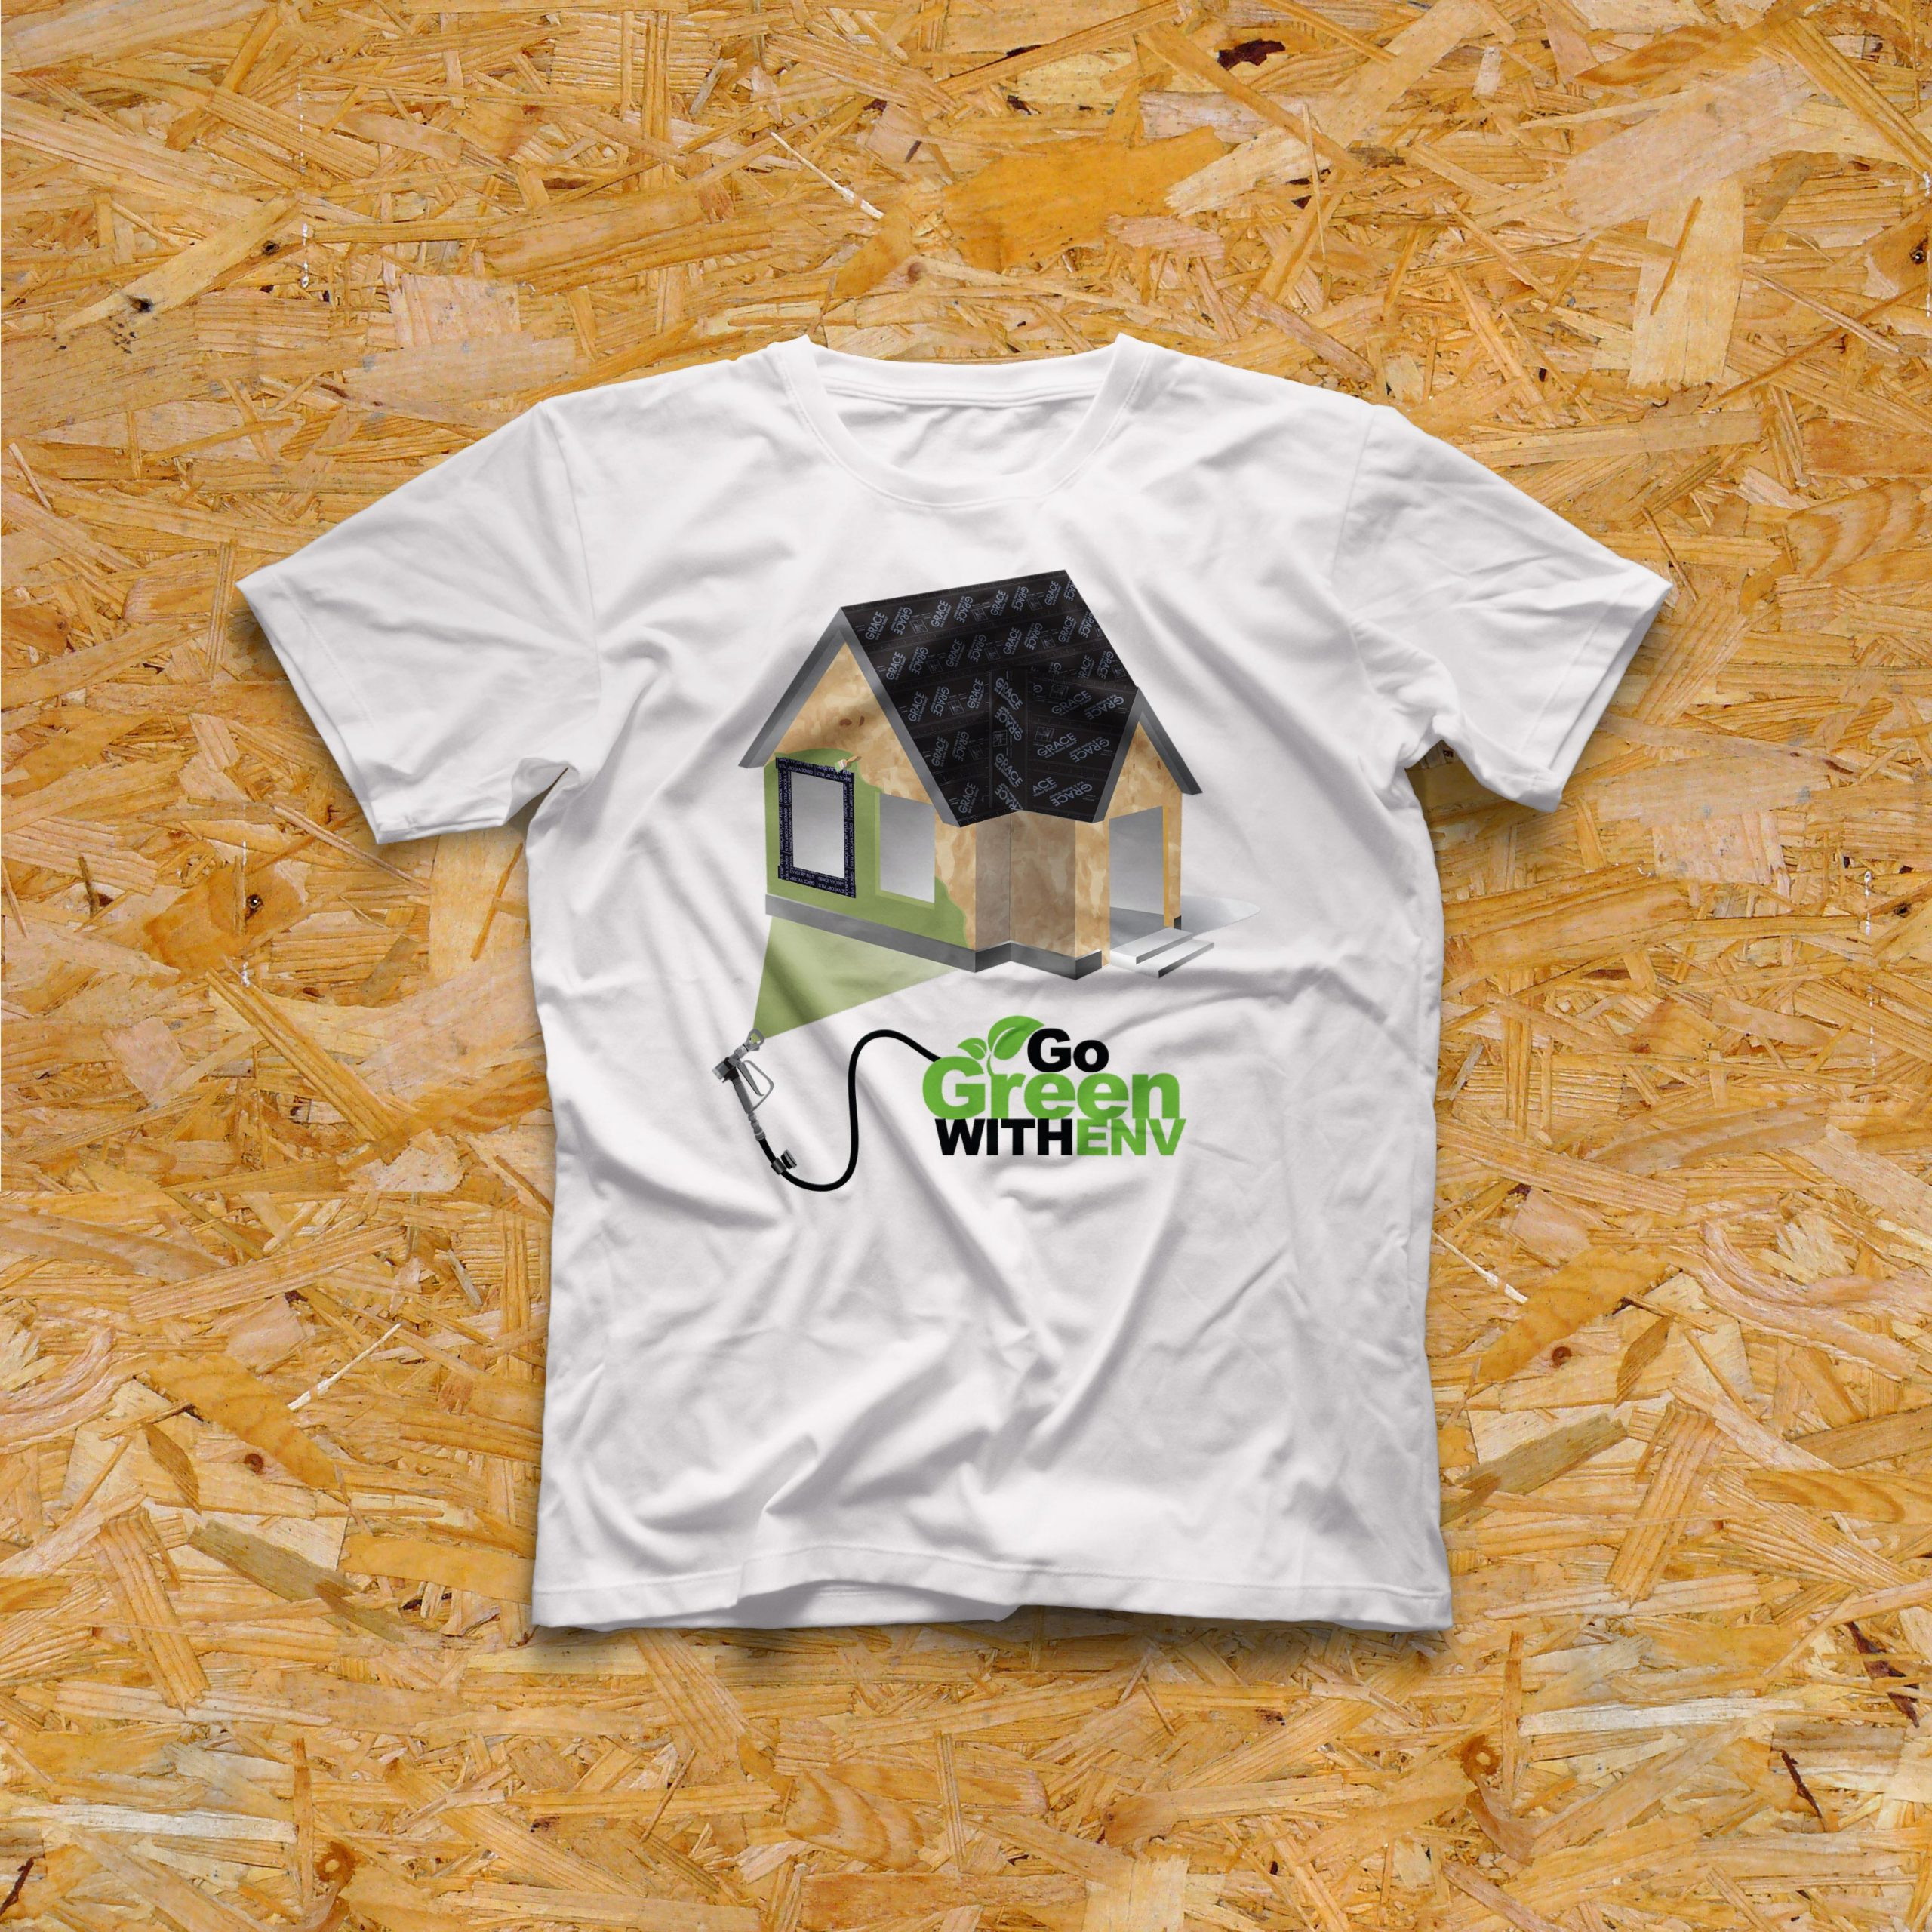 Spin350_Vycor_T-shirt-scaled.jpg